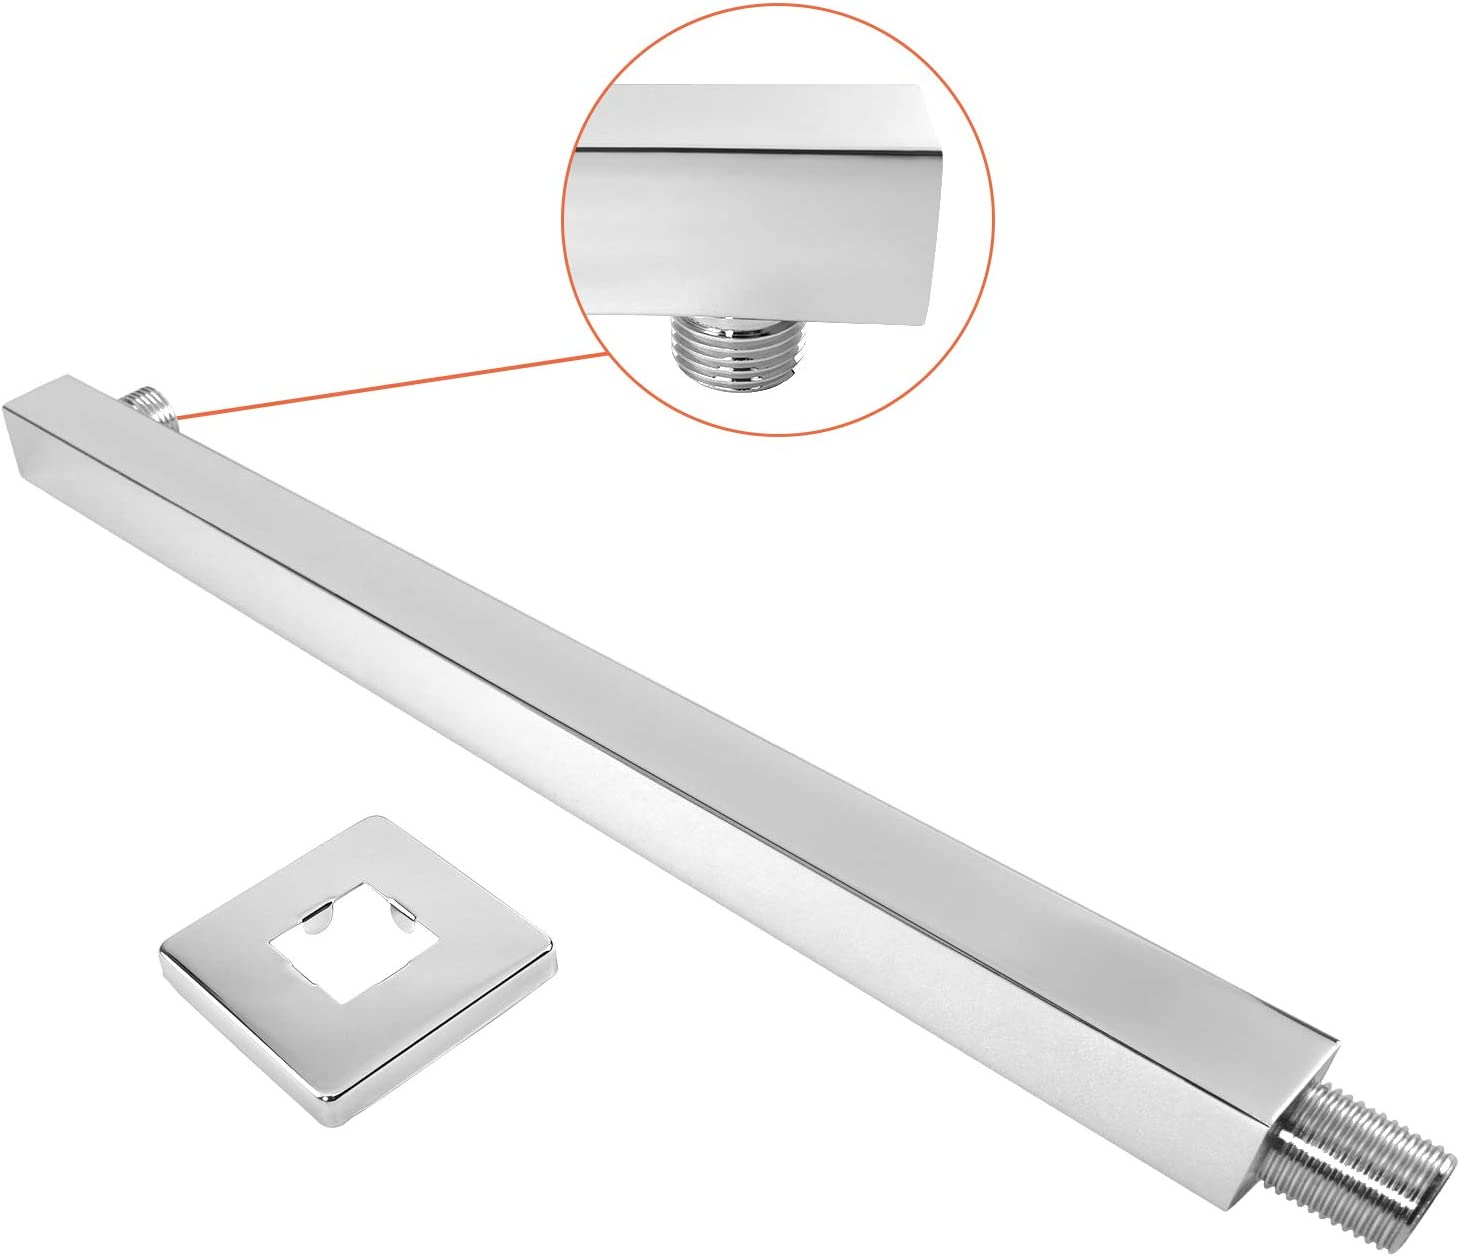 With Flange and Teflon Tape Brushed Nickel Rain Shower Head Extension Extender Made of Thicken Stainless Steel for Bathroom Rainfall Showerhead NearMoon 16 Inch Shower Arm